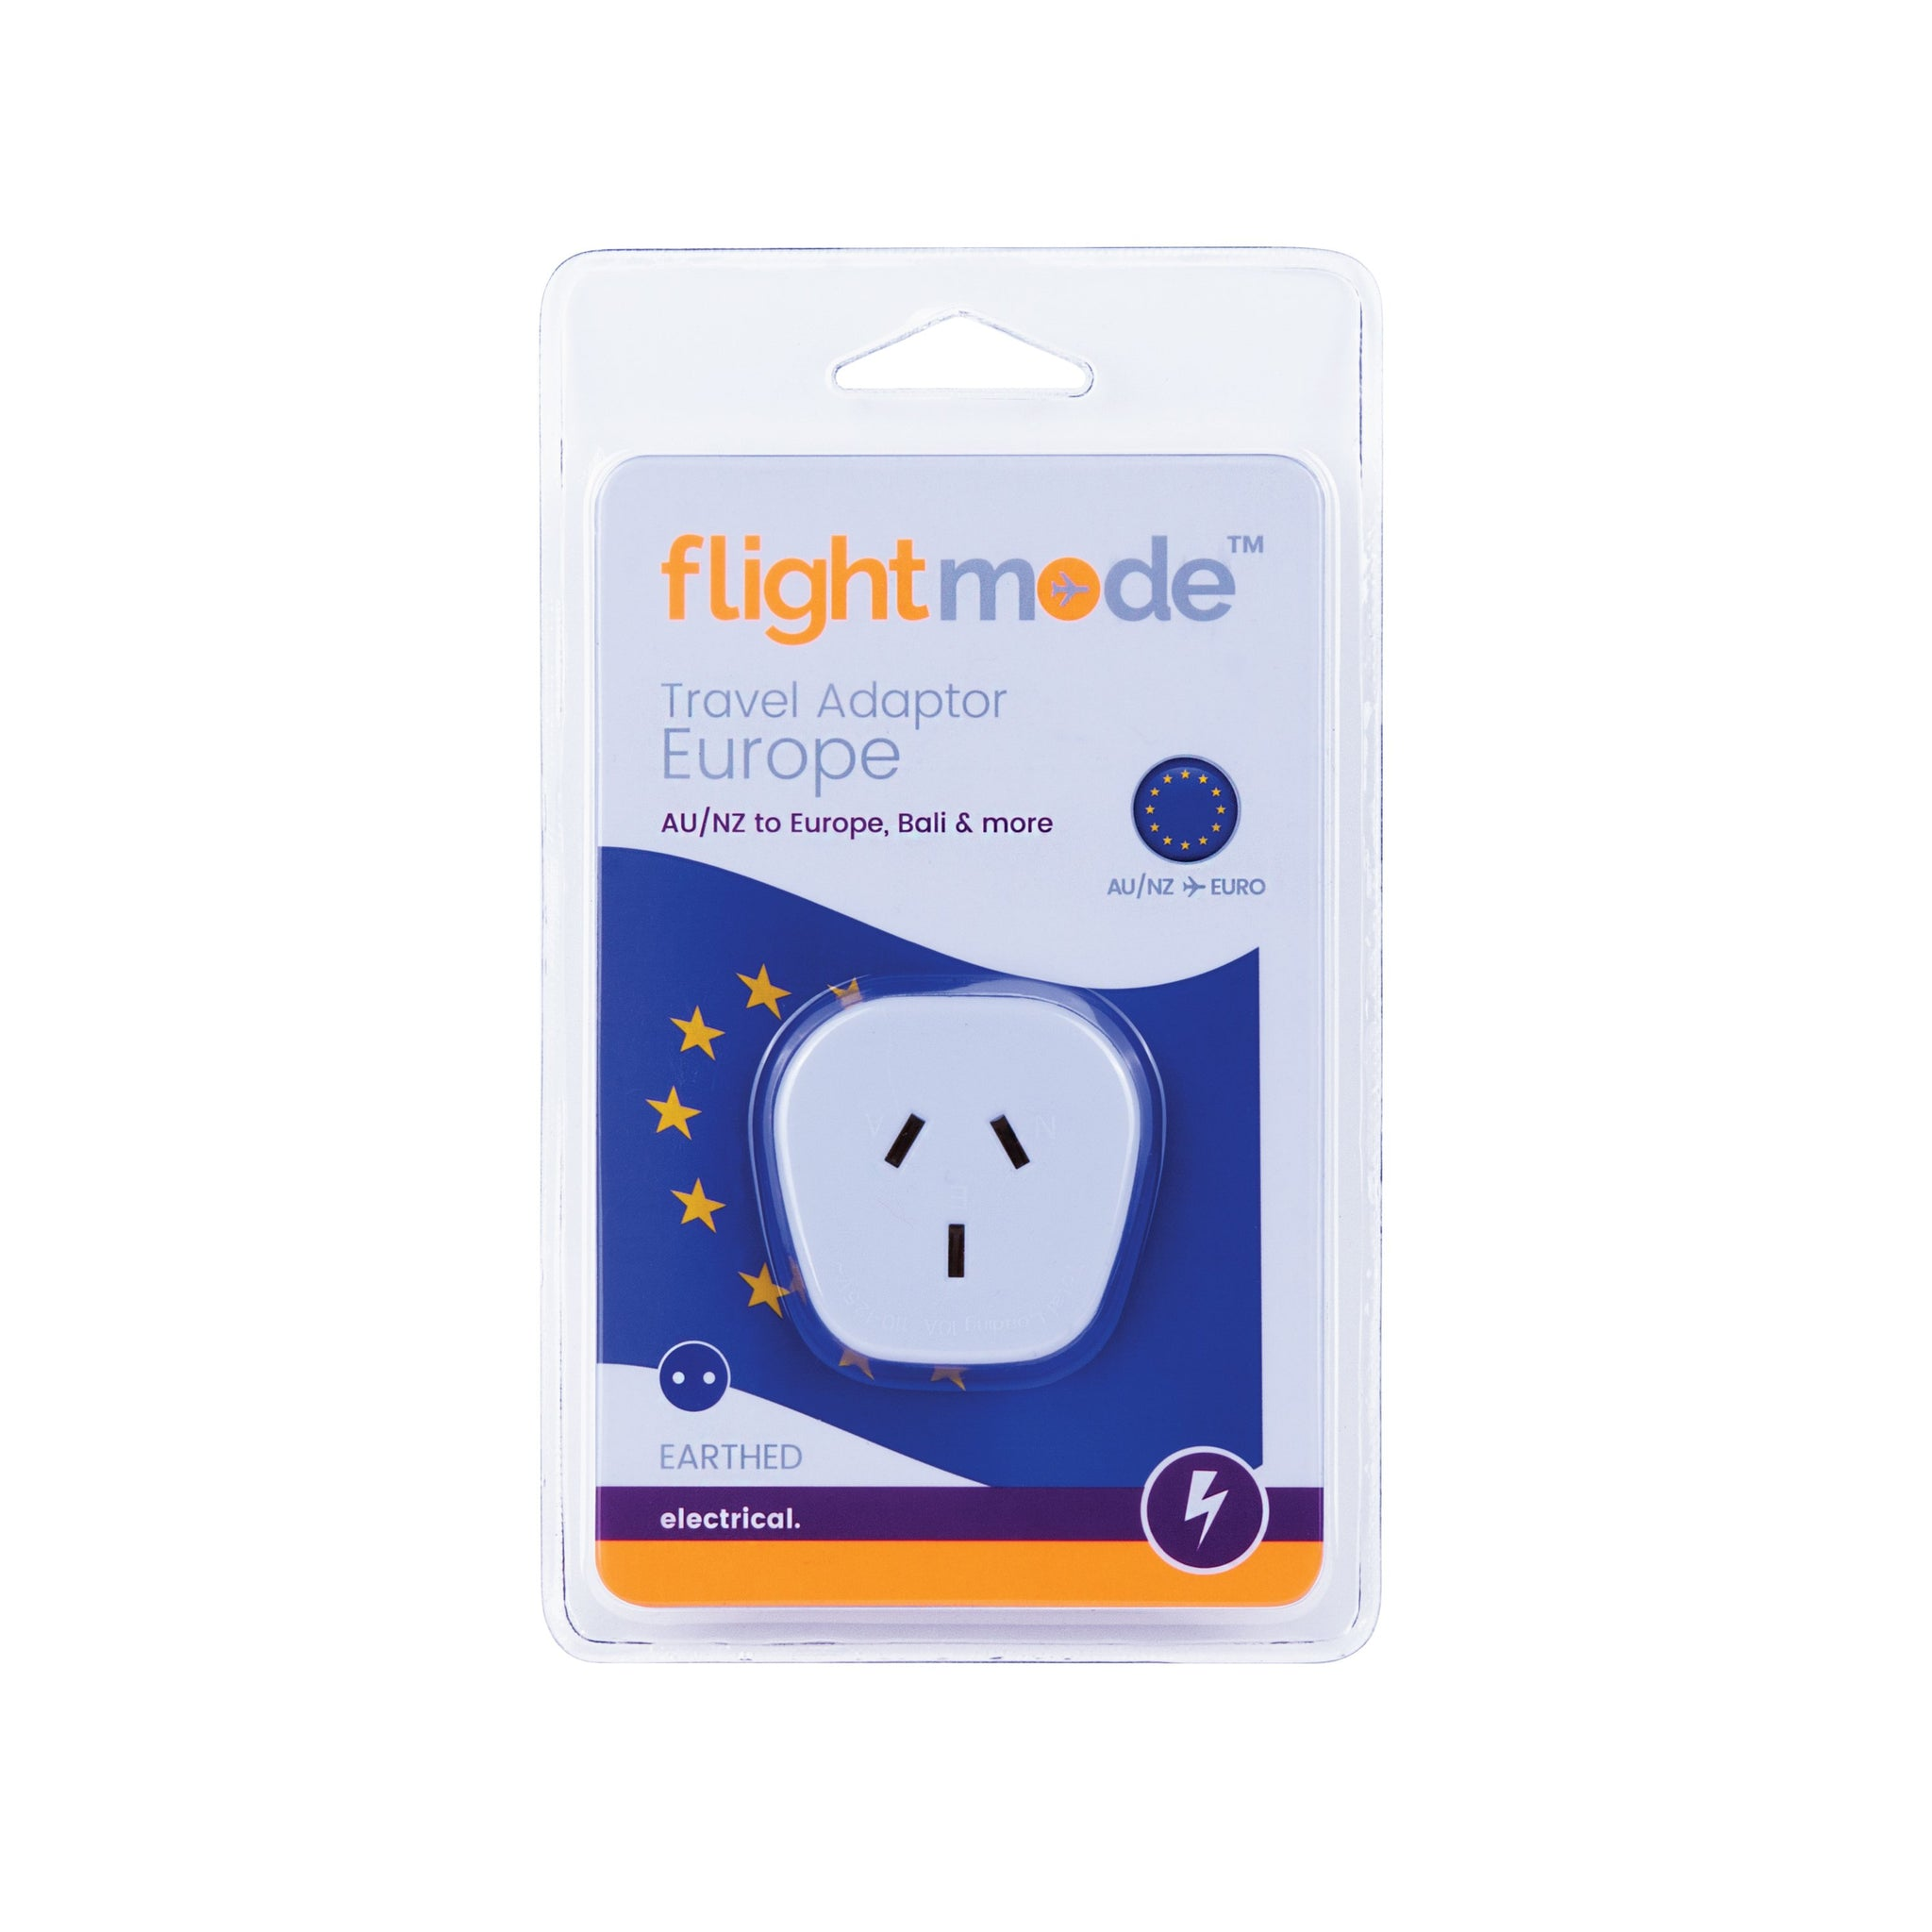 Flightmode Outbound Europe Adaptor (Europe/Bali) Type C - Allows Australian plugs to be used in countries that use the European 2 pin style outlet. Earthed. Max loading: 10A Adaptors do not convert voltage or frequency - please check the supply voltage and frequency and the voltage and frequency required to operate your appliance. If either of these differ, an appropriate transformer must be used.